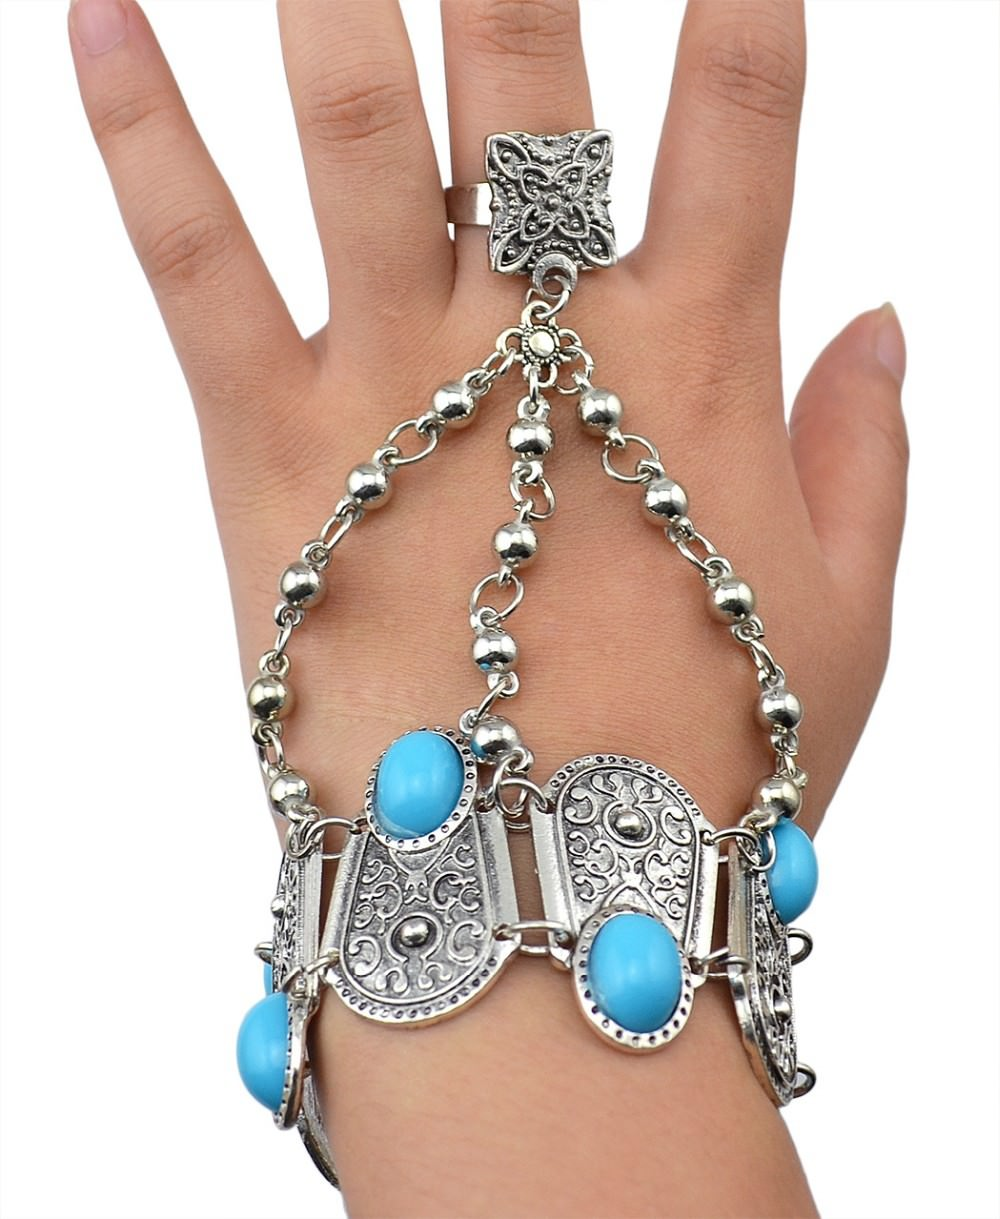 8846-5feaafd8f5cfbf97c7ef8547272b6376 Bohemian Blue Gemmed Chuny Bracelet Jewelry With Floral Slave Chain